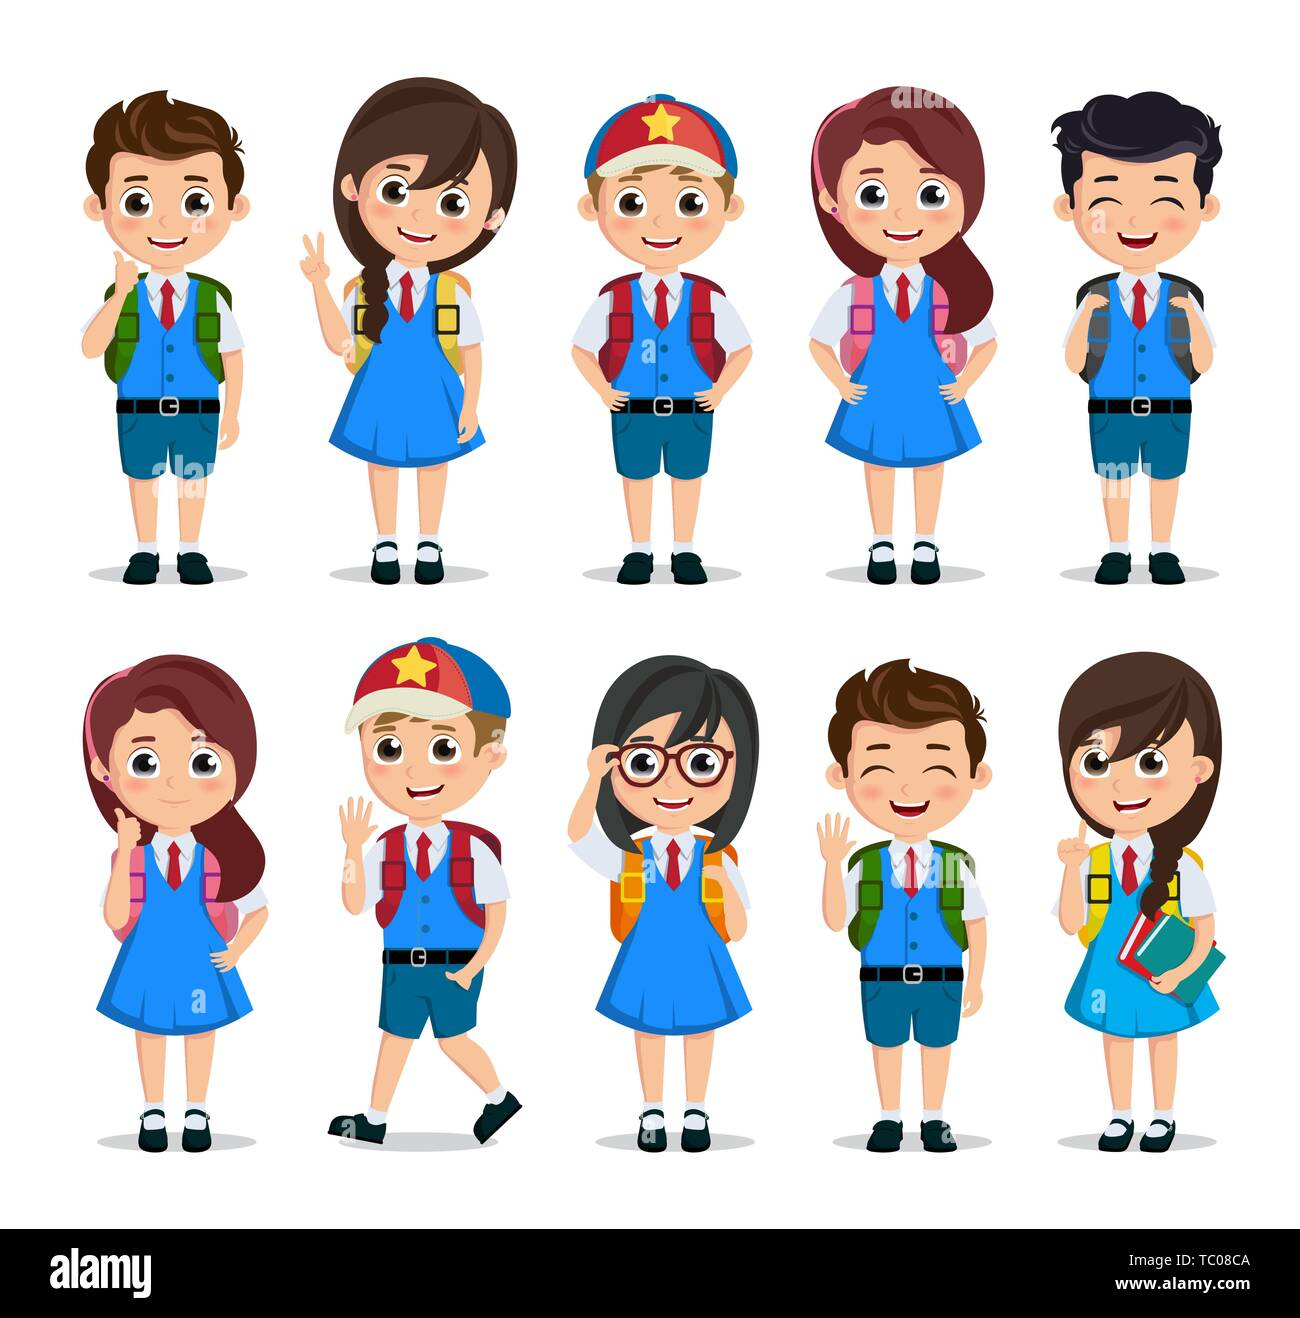 Student Characters Vector Set School Kids Cartoon Characters Wearing School Uniform With Various Poses And Gestures For Education Related Design Stock Vector Image Art Alamy